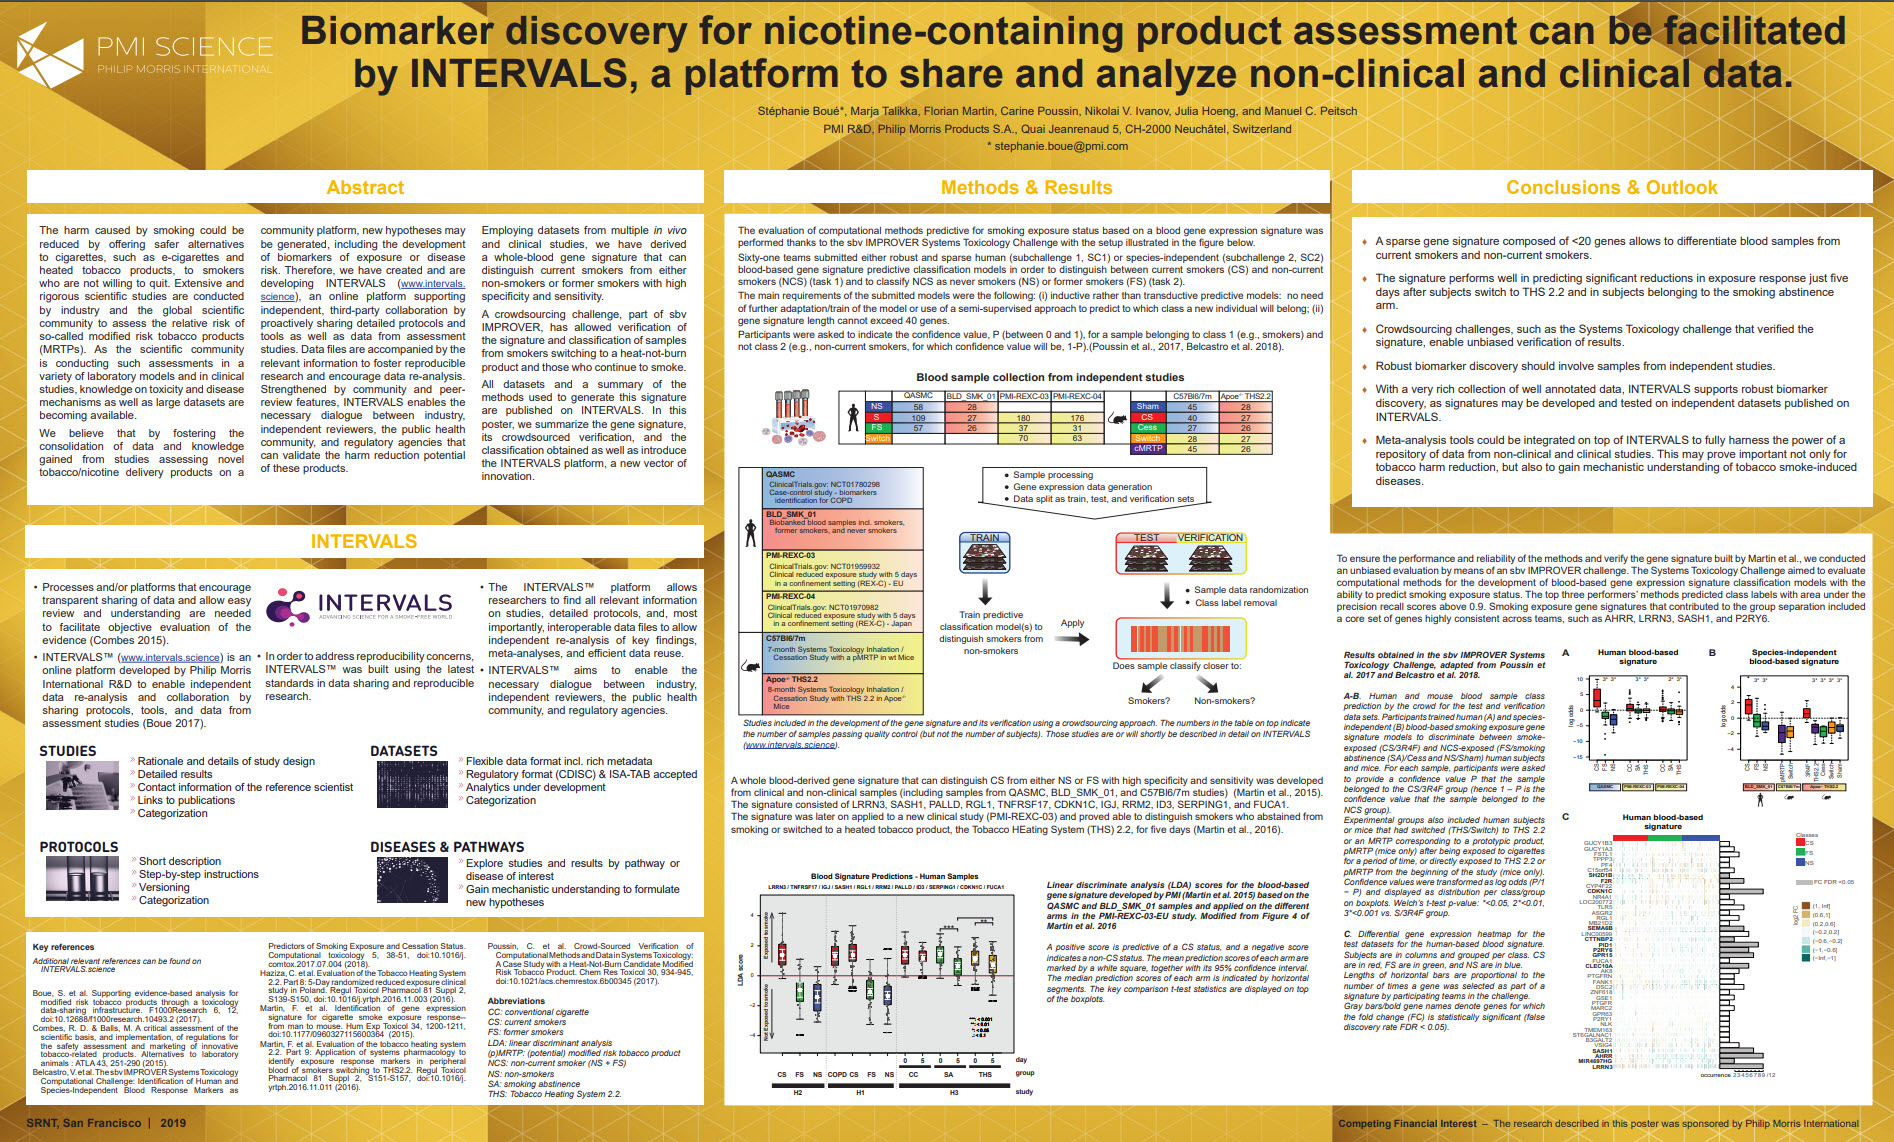 S. Boué_Biomarker discovery for nicotine-containing product assessment